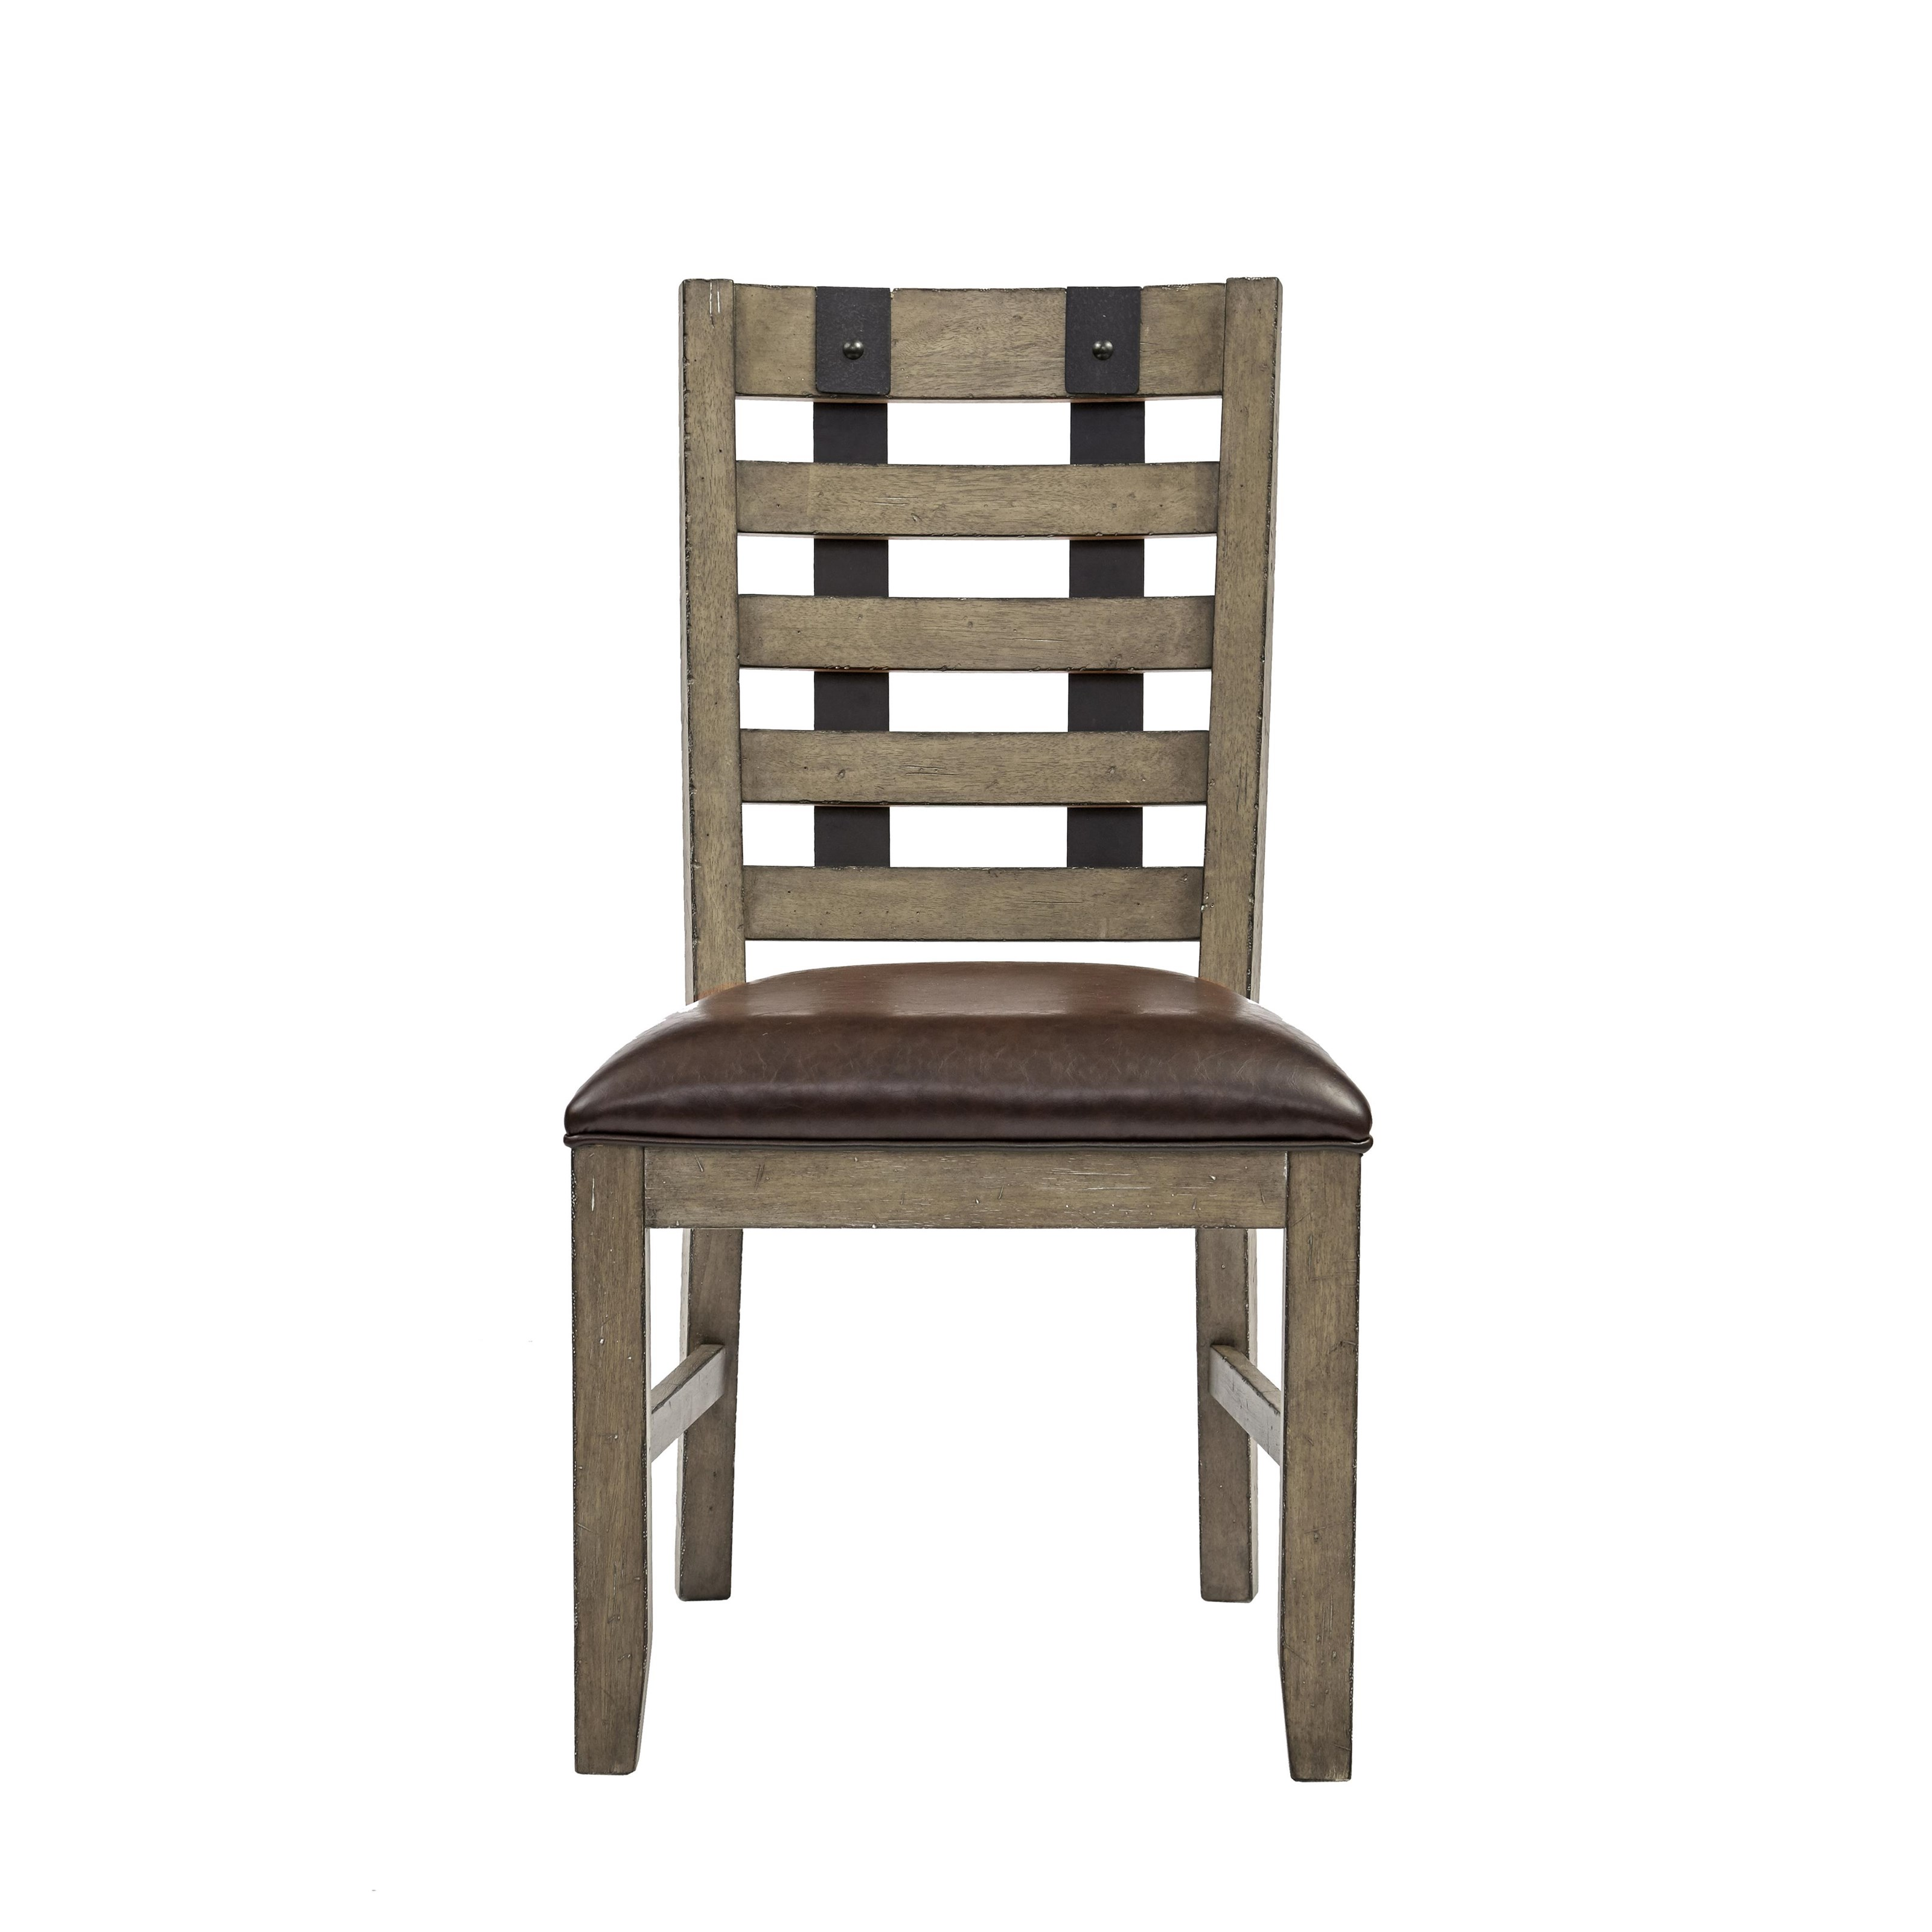 Oregon district metal strap side chair morris home dining side chairs Morris home furniture hours